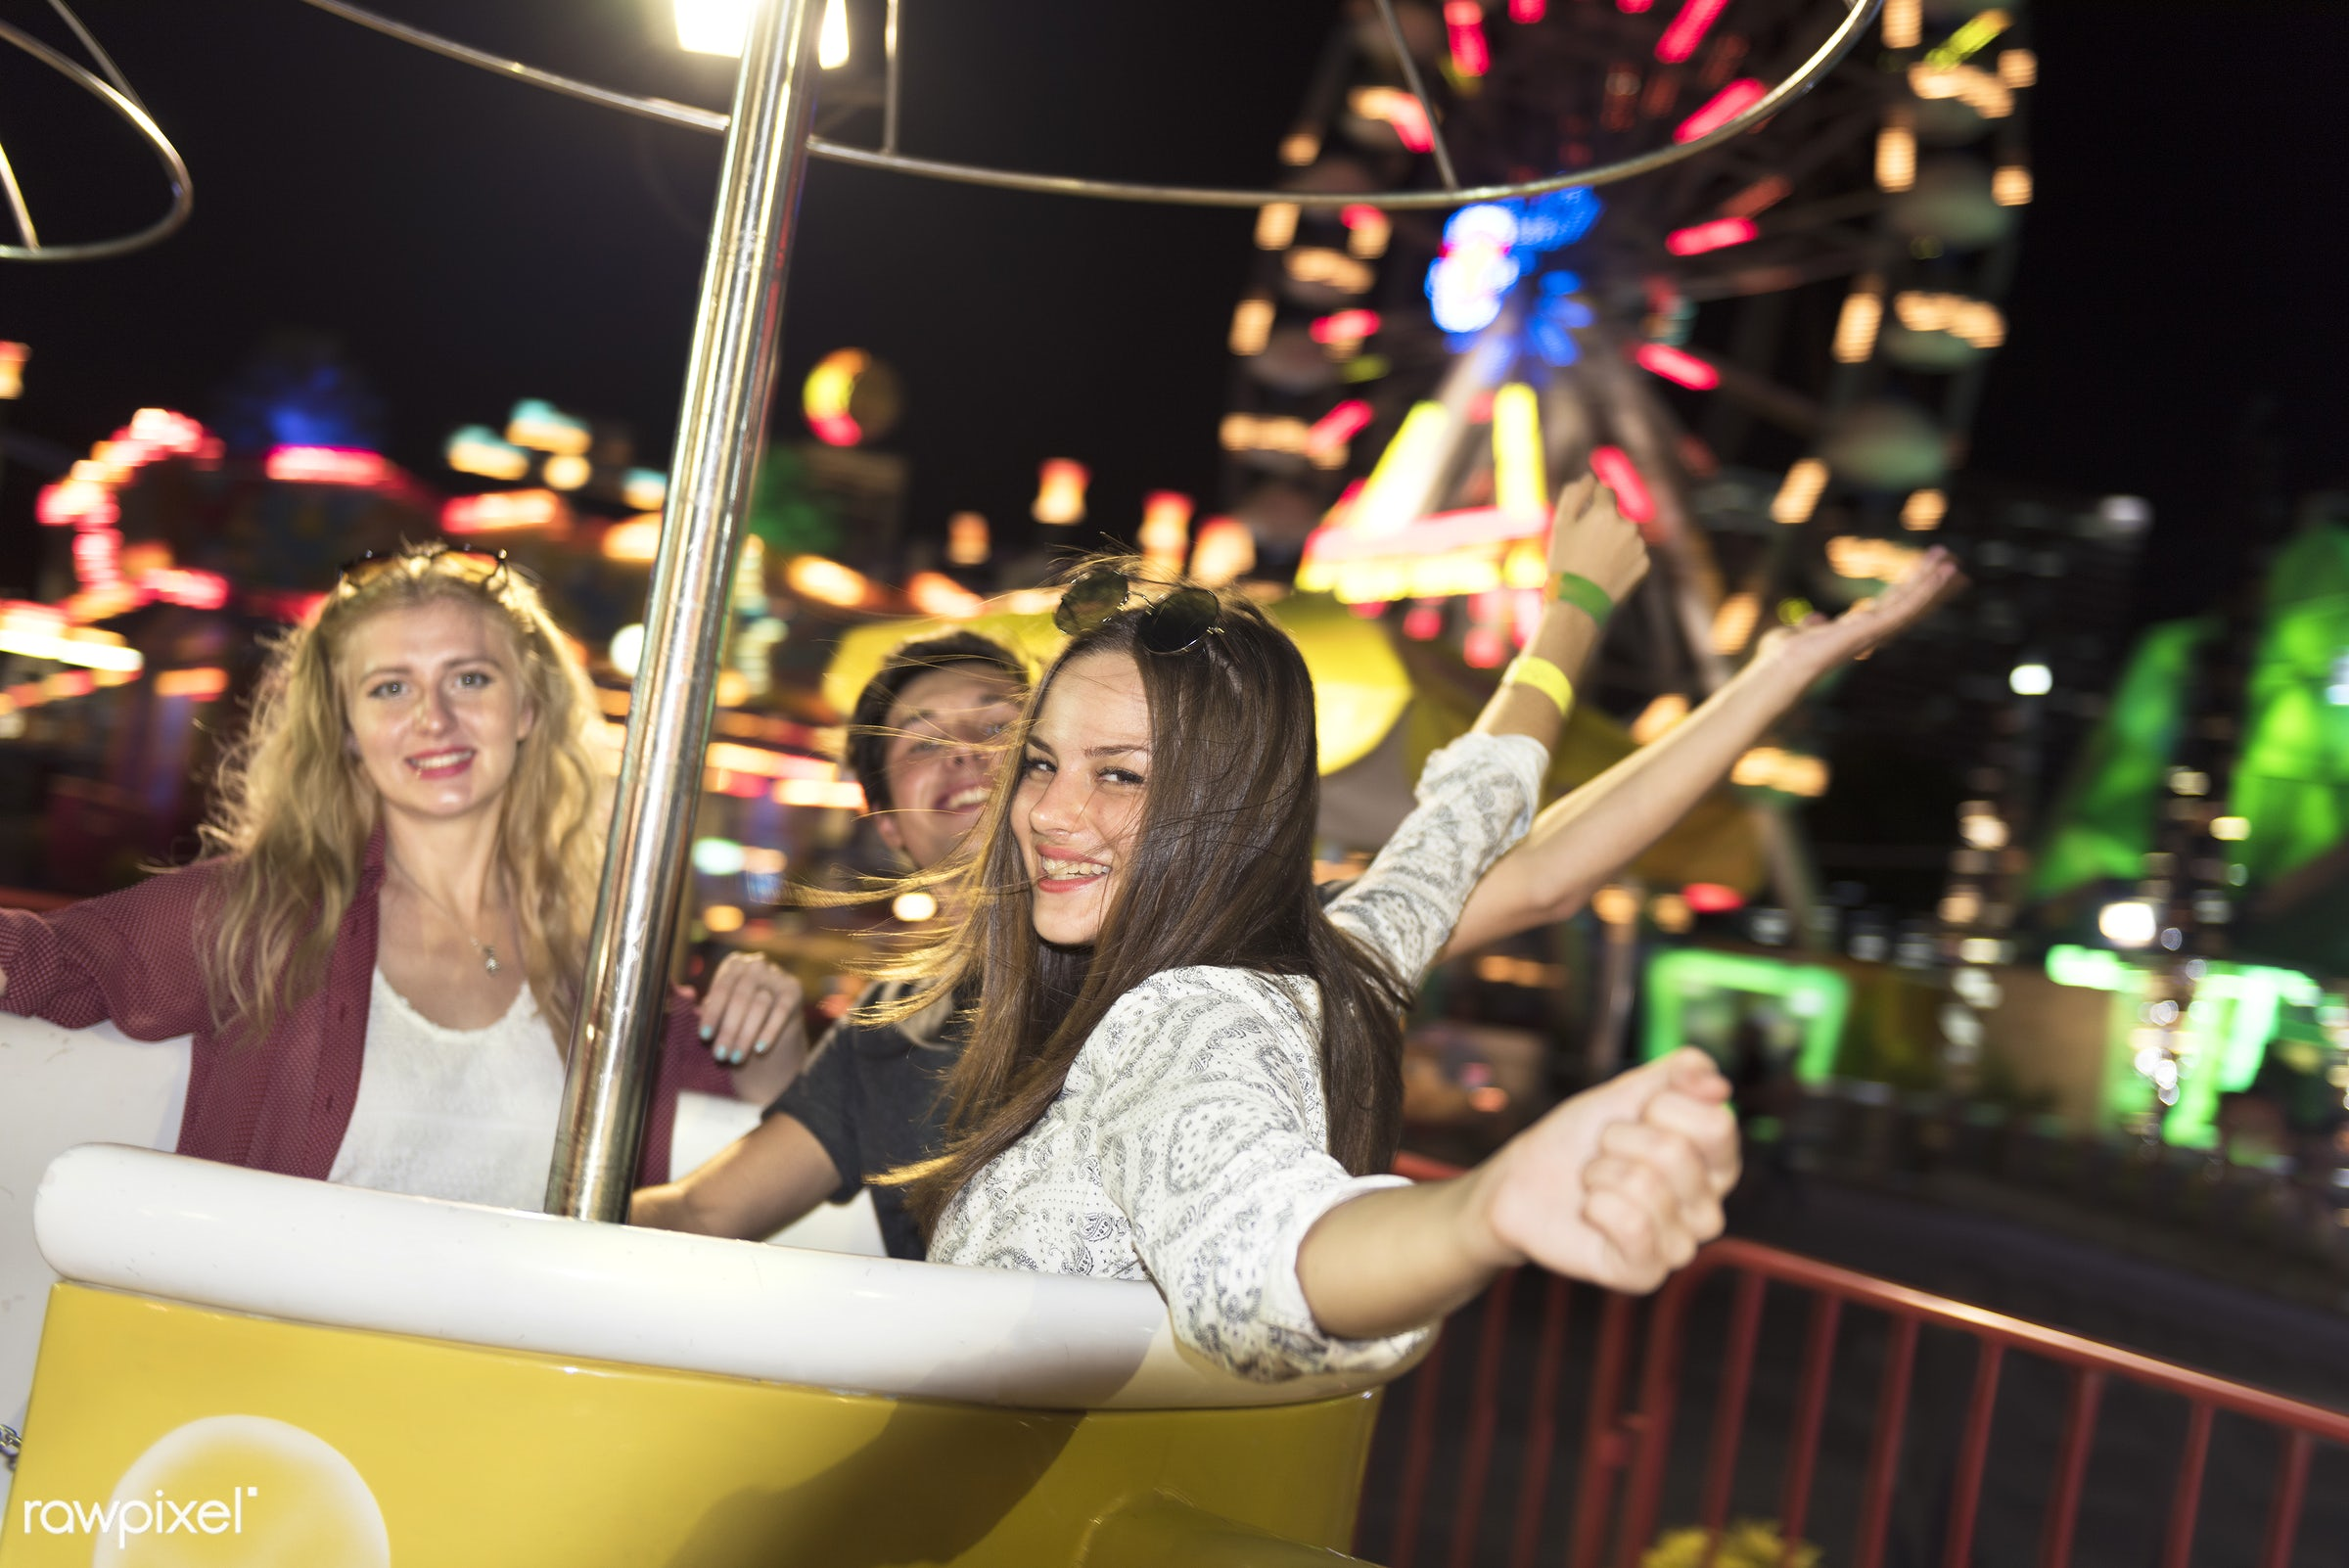 amusement park, caucasian, enjoyment, expression, feeling, friends, friendship, fun, fun park, group, happiness, man, people...